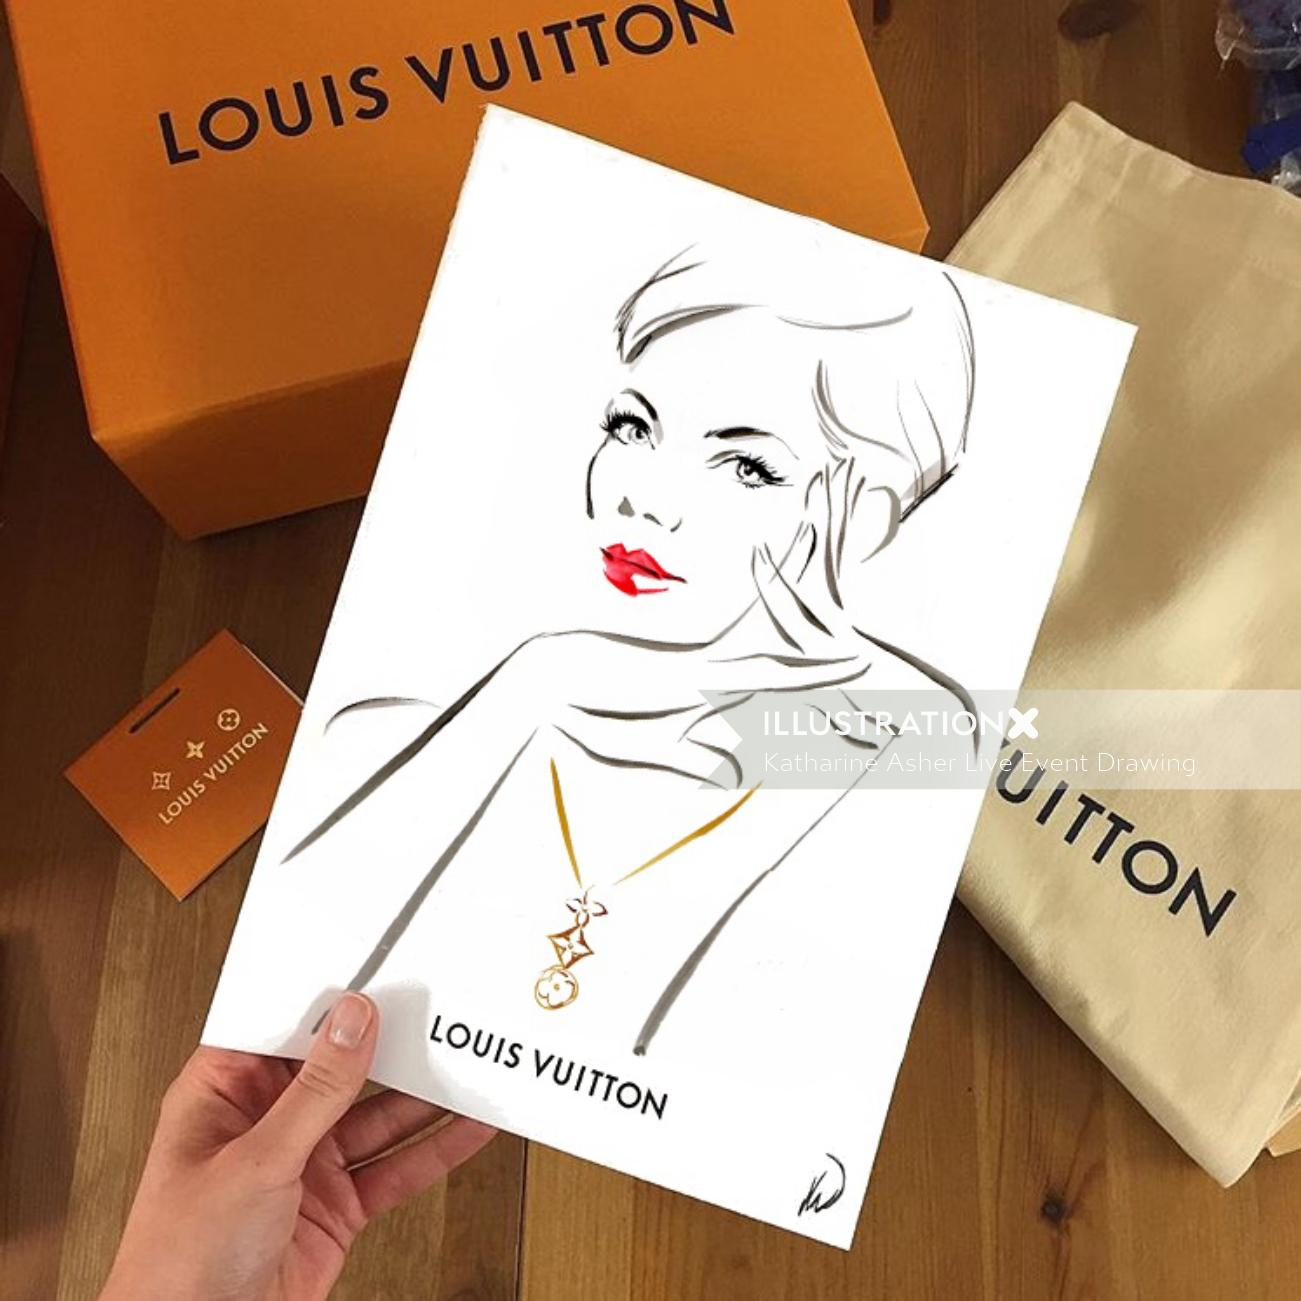 Louis Vuitton Live event drawing